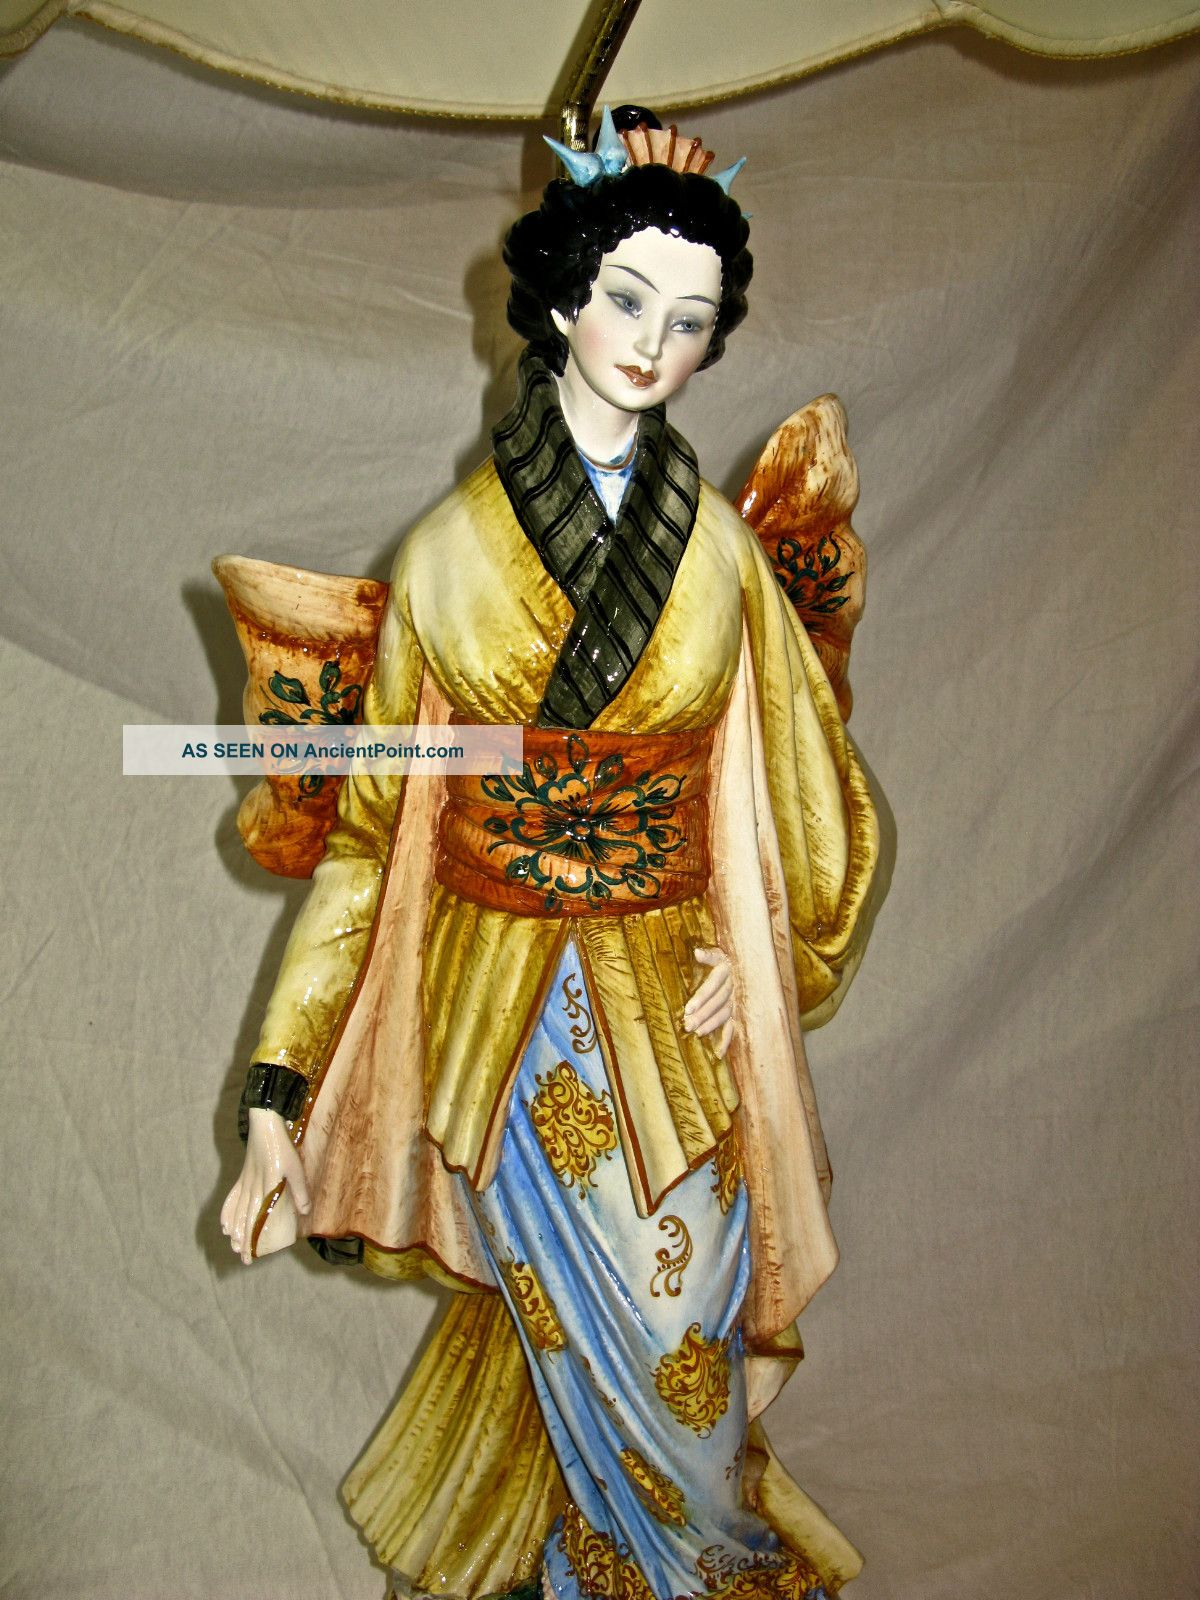 Vintage Benrose Porcelain Italy Japanese Geisha Girl Statue Lamp Base Table Lamp Figurines photo